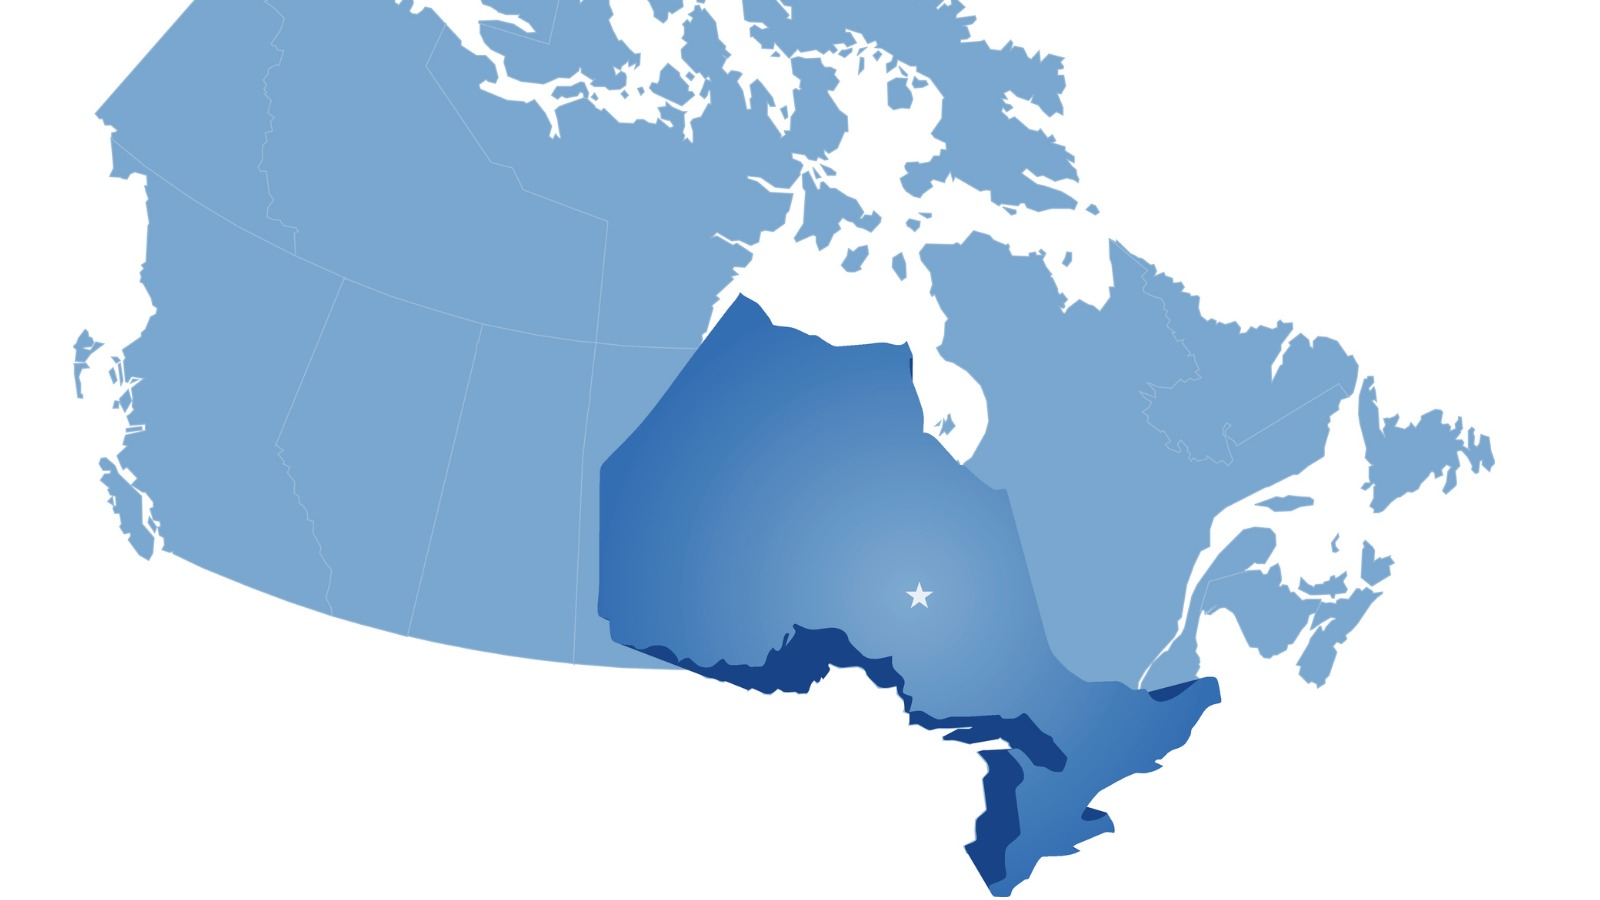 Map Of Canada Ontario Highlighted Changes to Ontario Food Safety Laws Effective 1st July 2018